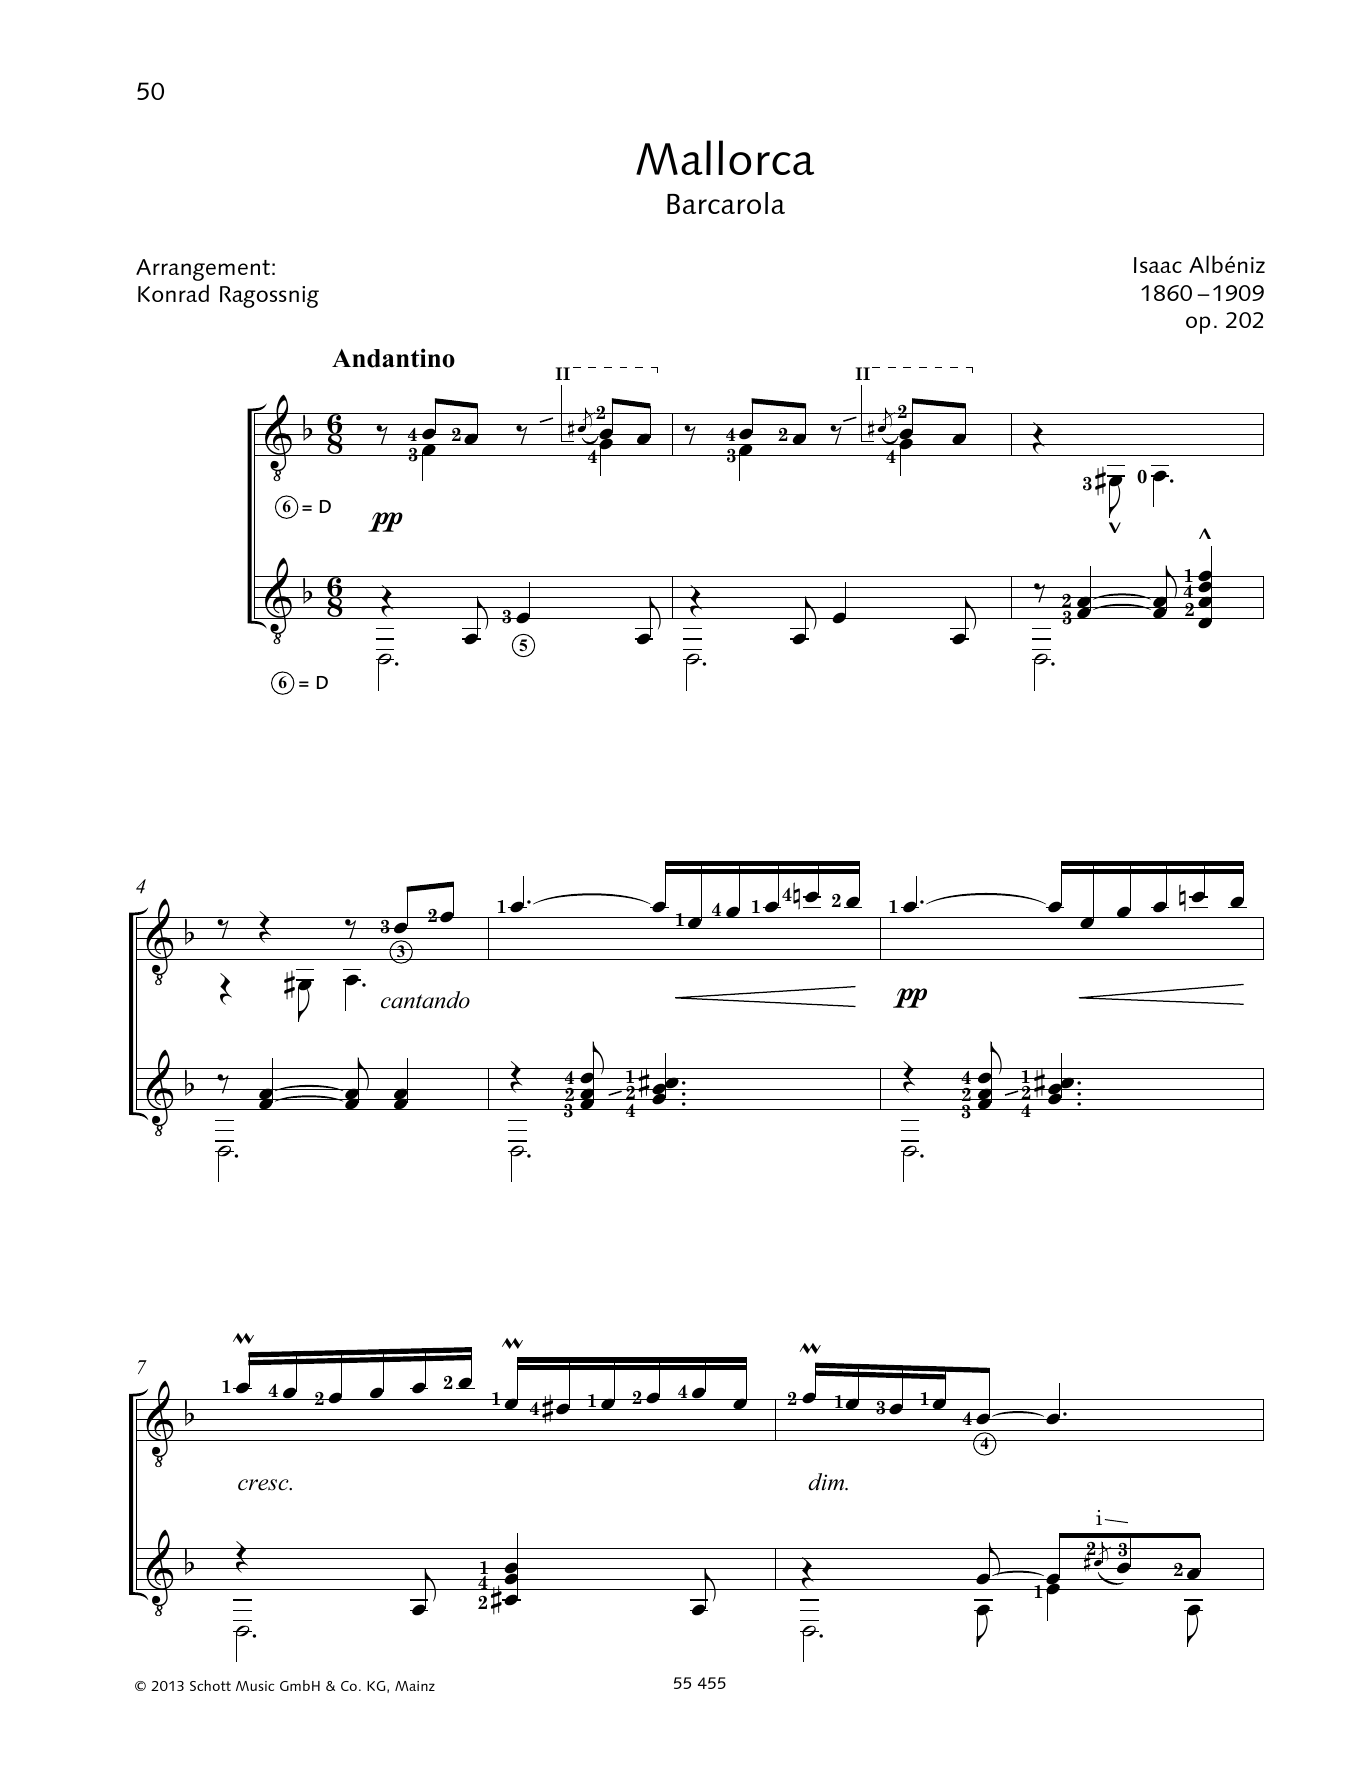 Mallorca (Barcarola) - Full Score Sheet Music